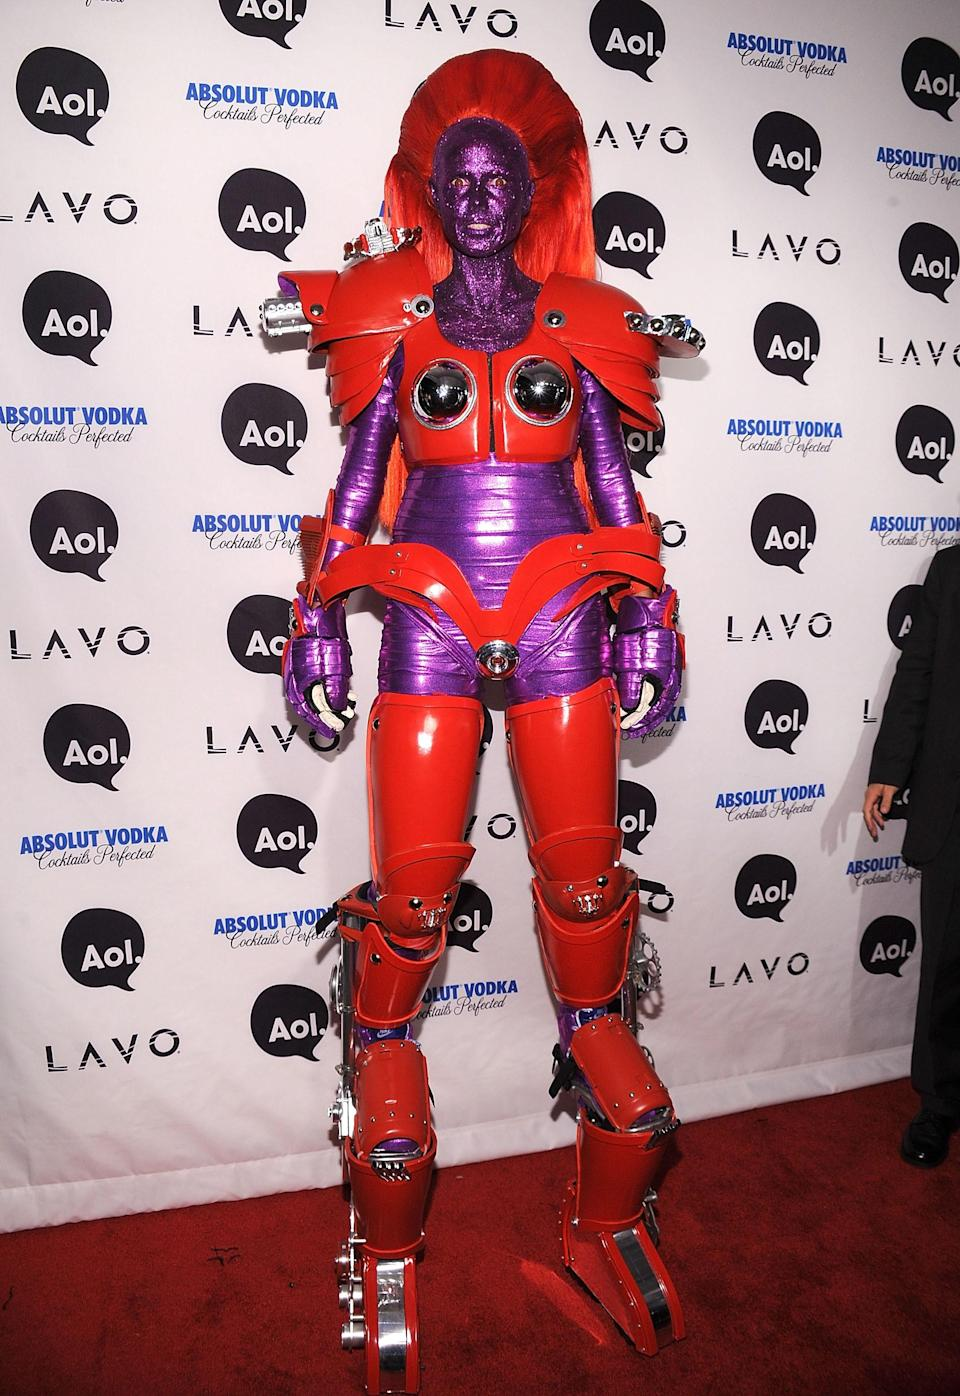 "<p>We actually have <em>no</em> clue what Klum is here, TBH. A robot? Transformer? Power Ranger? Can't be sure. Regardless, her hair, makeup, and costume are on point.</p> <p><strong>Get the look:</strong> <a href=""https://amzn.to/2ImDttd"" rel=""nofollow noopener"" target=""_blank"" data-ylk=""slk:Mehron Makeup Paradise Makeup Purple Face & Body Paint, Amazon ($12.30)"" class=""link rapid-noclick-resp"">Mehron Makeup Paradise Makeup Purple Face & Body Paint, Amazon ($12.30)</a>, <a href=""https://www.sephora.com/product/the-rainbow-eyeshadow-palette-P429027?icid2=products%20grid:p429027:product"" rel=""nofollow noopener"" target=""_blank"" data-ylk=""slk:Violet Voss The Rainbow Eyeshadow Palette, Sephora ($30)"" class=""link rapid-noclick-resp"">Violet Voss The Rainbow Eyeshadow Palette, Sephora ($30)</a>, <a href=""https://amzn.to/2OjOhgM"" rel=""nofollow noopener"" target=""_blank"" data-ylk=""slk:Forum Outta Space Robot Costume, Amazon ($54.87)"" class=""link rapid-noclick-resp"">Forum Outta Space Robot Costume, Amazon ($54.87)</a>, <a href=""https://amzn.to/2IlnlrG"" rel=""nofollow noopener"" target=""_blank"" data-ylk=""slk:Mirrored Wrap-Around Glasses, Amazon ($6.25)"" class=""link rapid-noclick-resp"">Mirrored Wrap-Around Glasses, Amazon ($6.25)</a>, and <a href=""https://amzn.to/2DBXiOq"" rel=""nofollow noopener"" target=""_blank"" data-ylk=""slk:Fever Smiffy's Women's Space Cadet Costume, Amazon ($33.56–$36.36)"" class=""link rapid-noclick-resp"">Fever Smiffy's Women's Space Cadet Costume, Amazon ($33.56–$36.36)</a></p>"